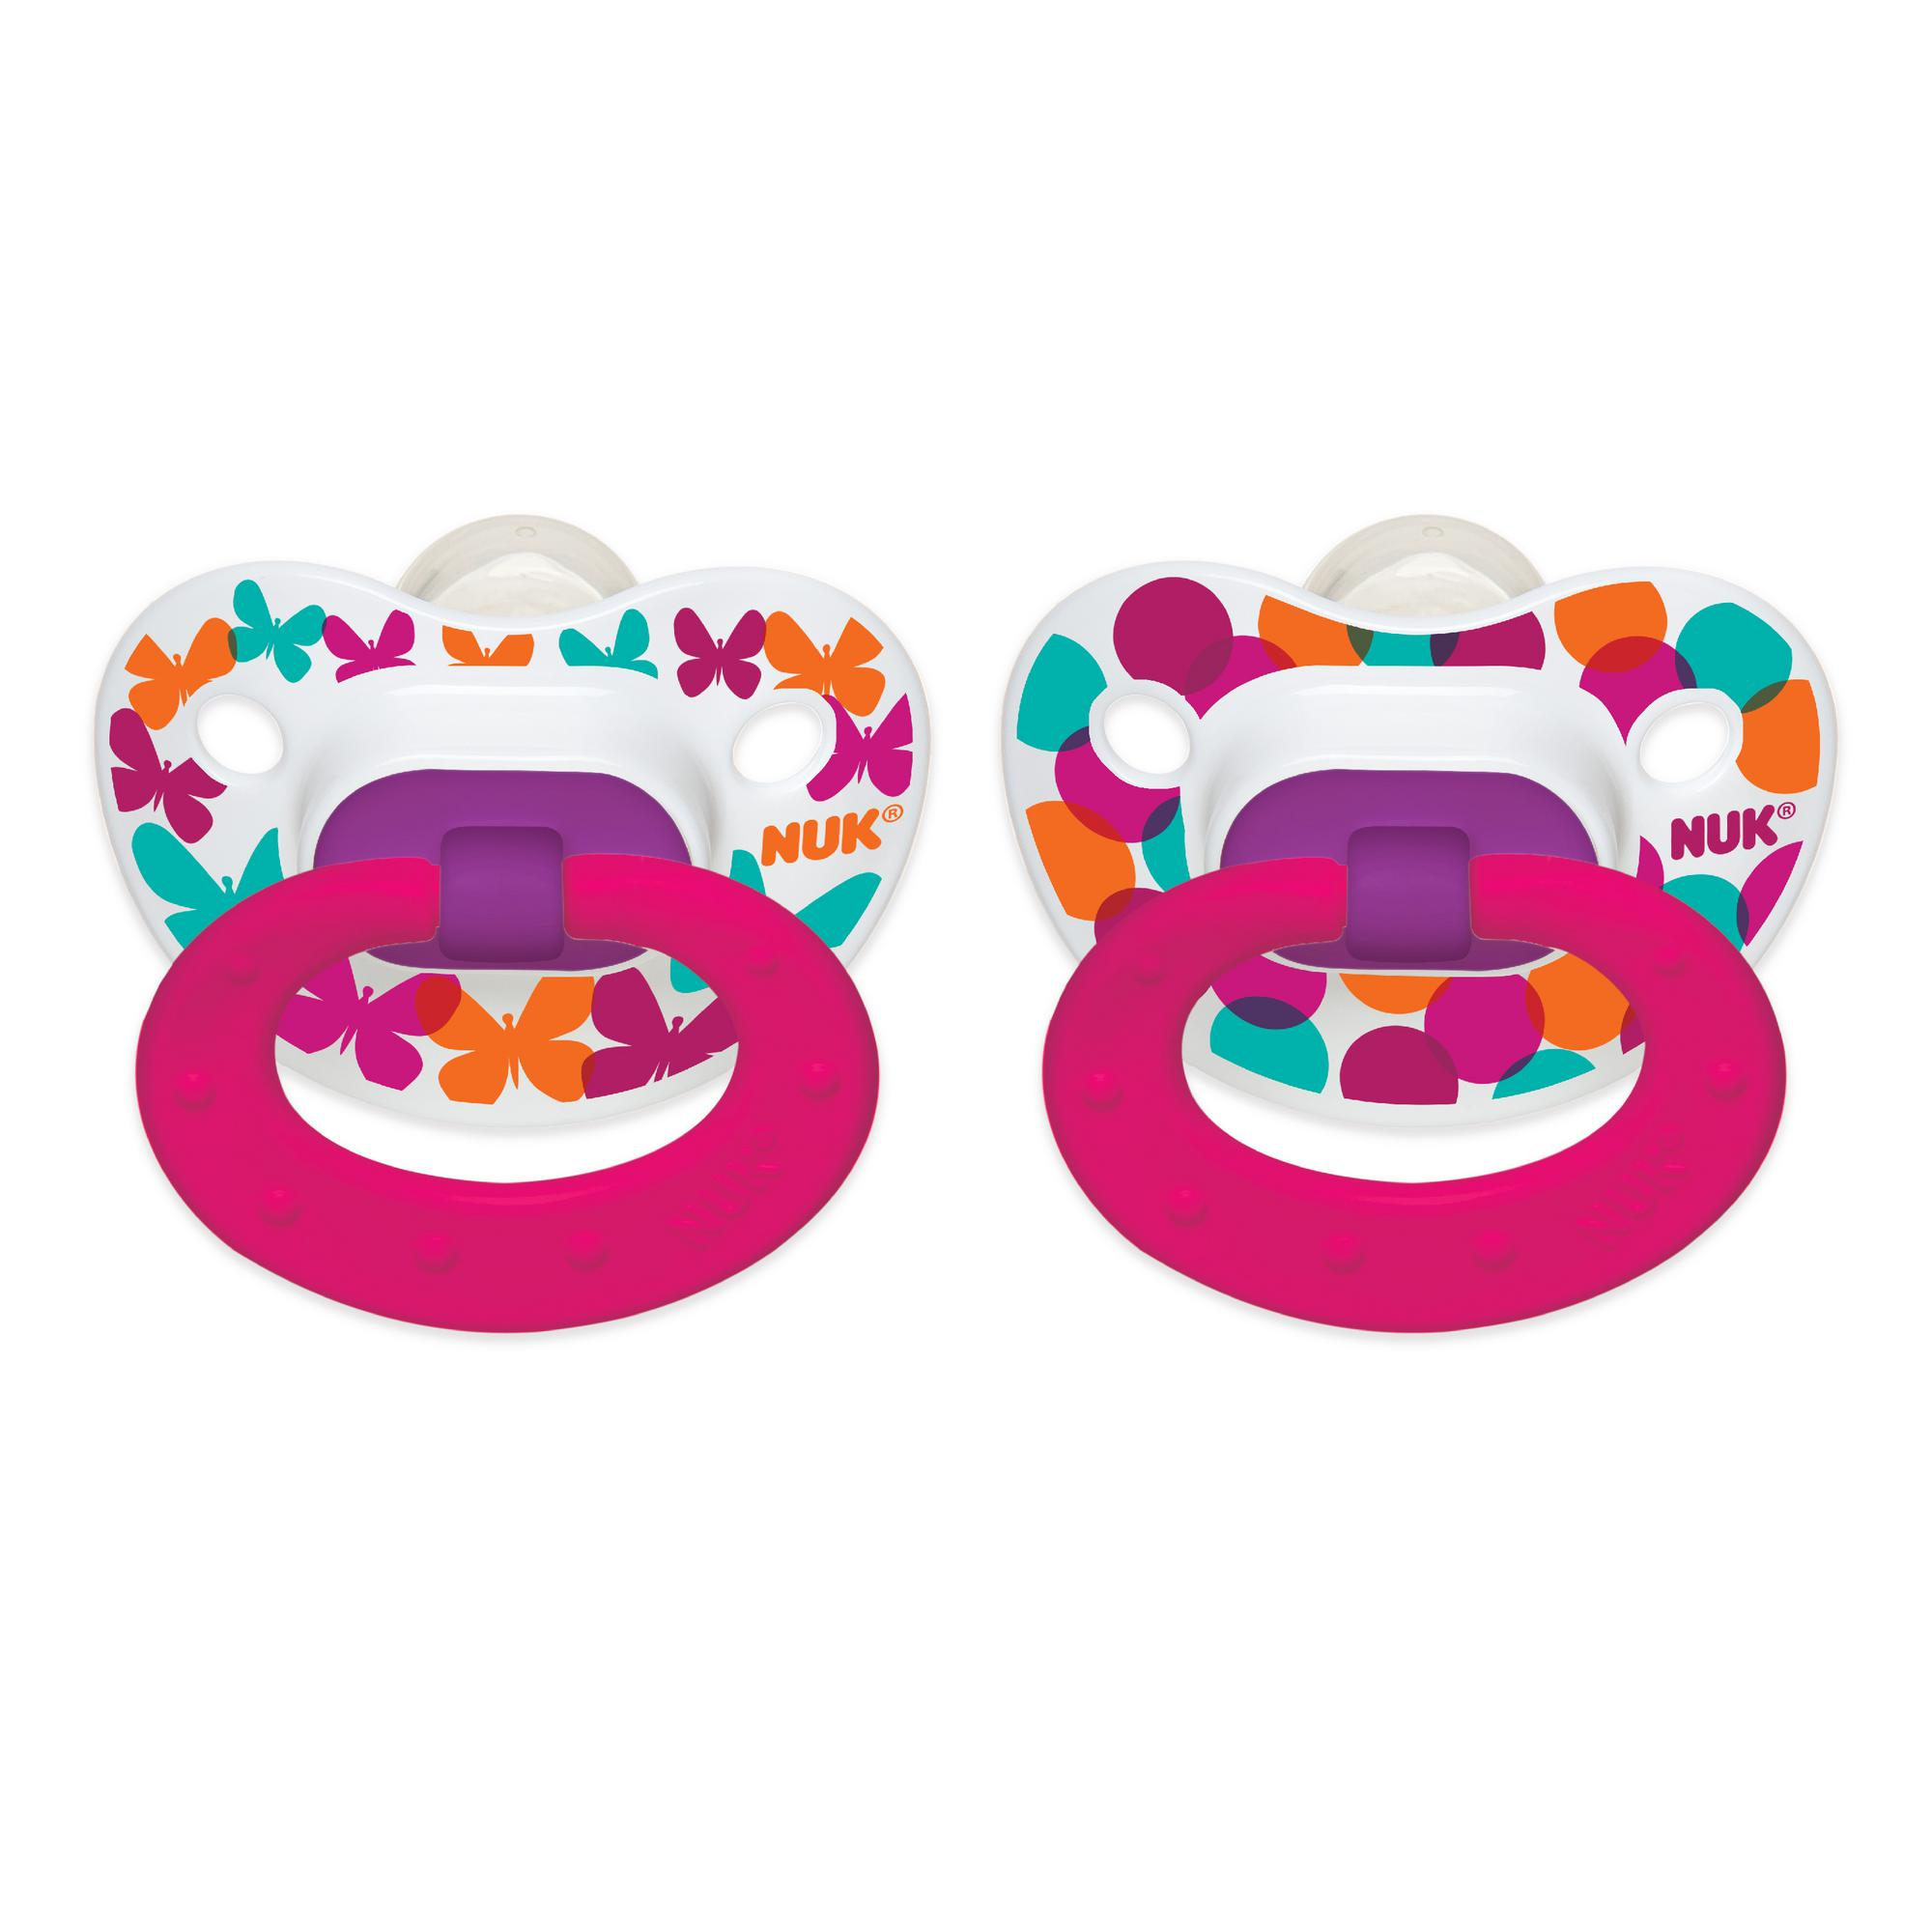 NUK Orthodontic Pacifier, 18+ Months, Dots - 2 Counts